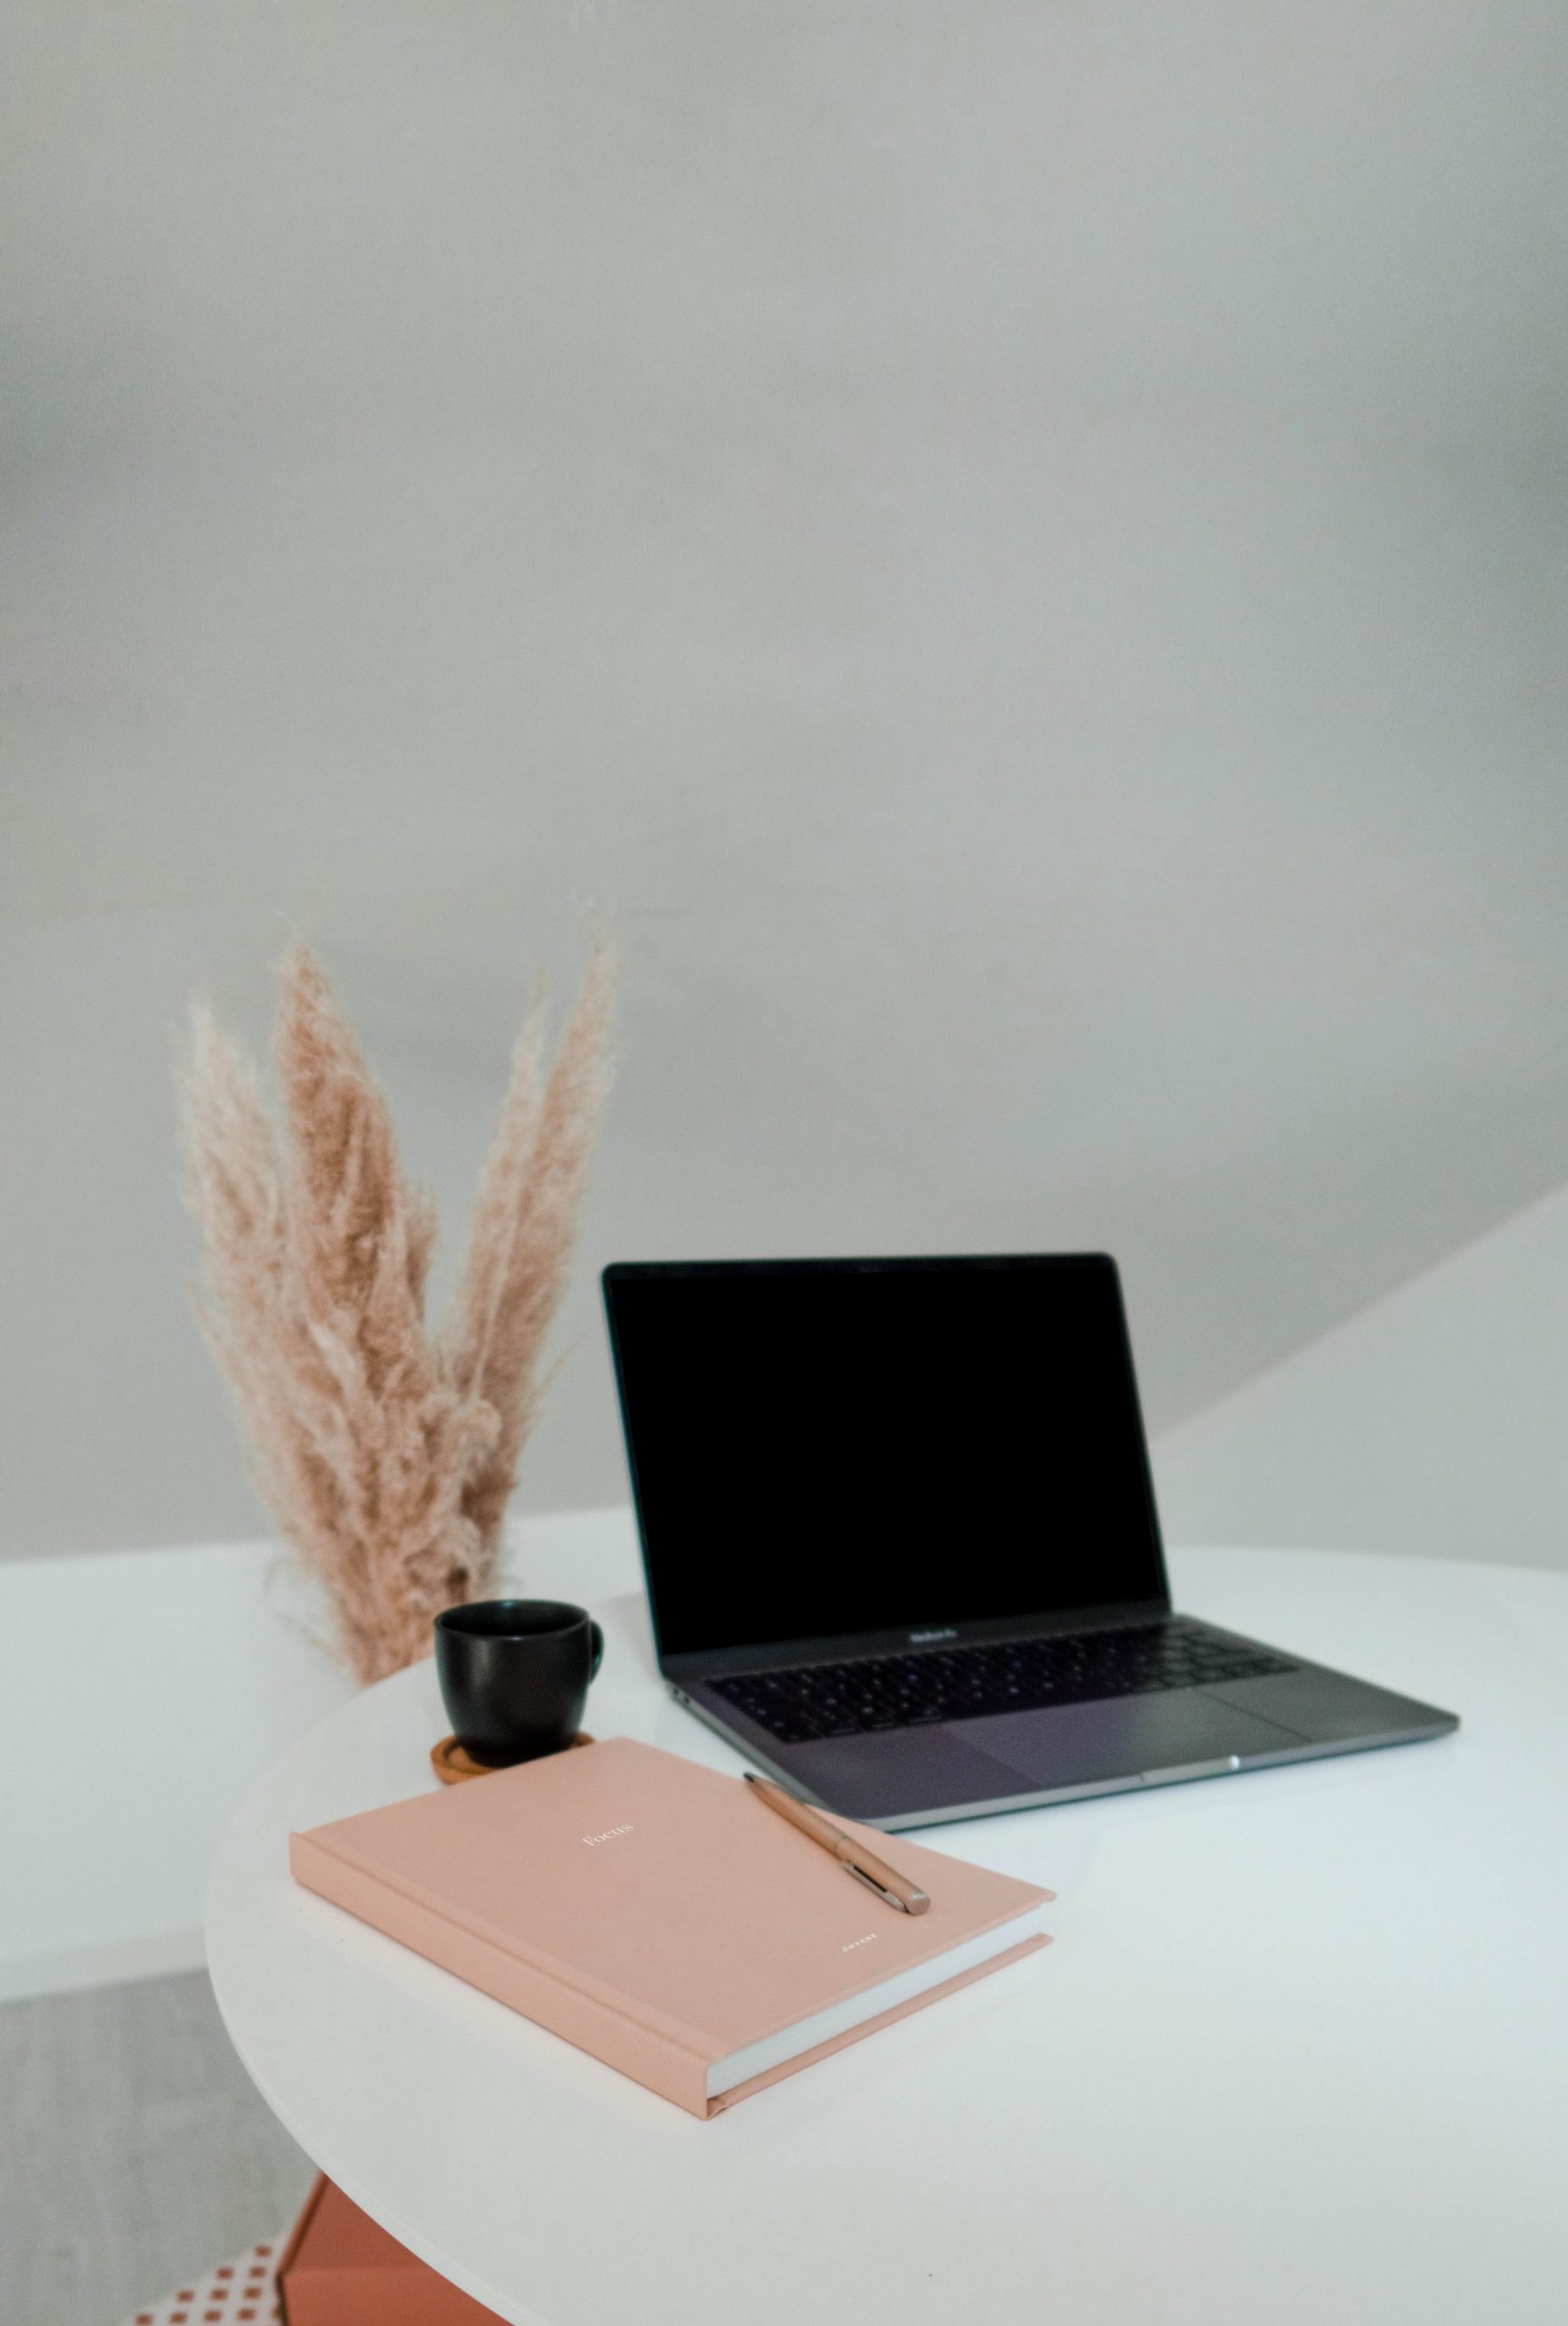 5 amazing ways to stay on top of blogging responsibilities